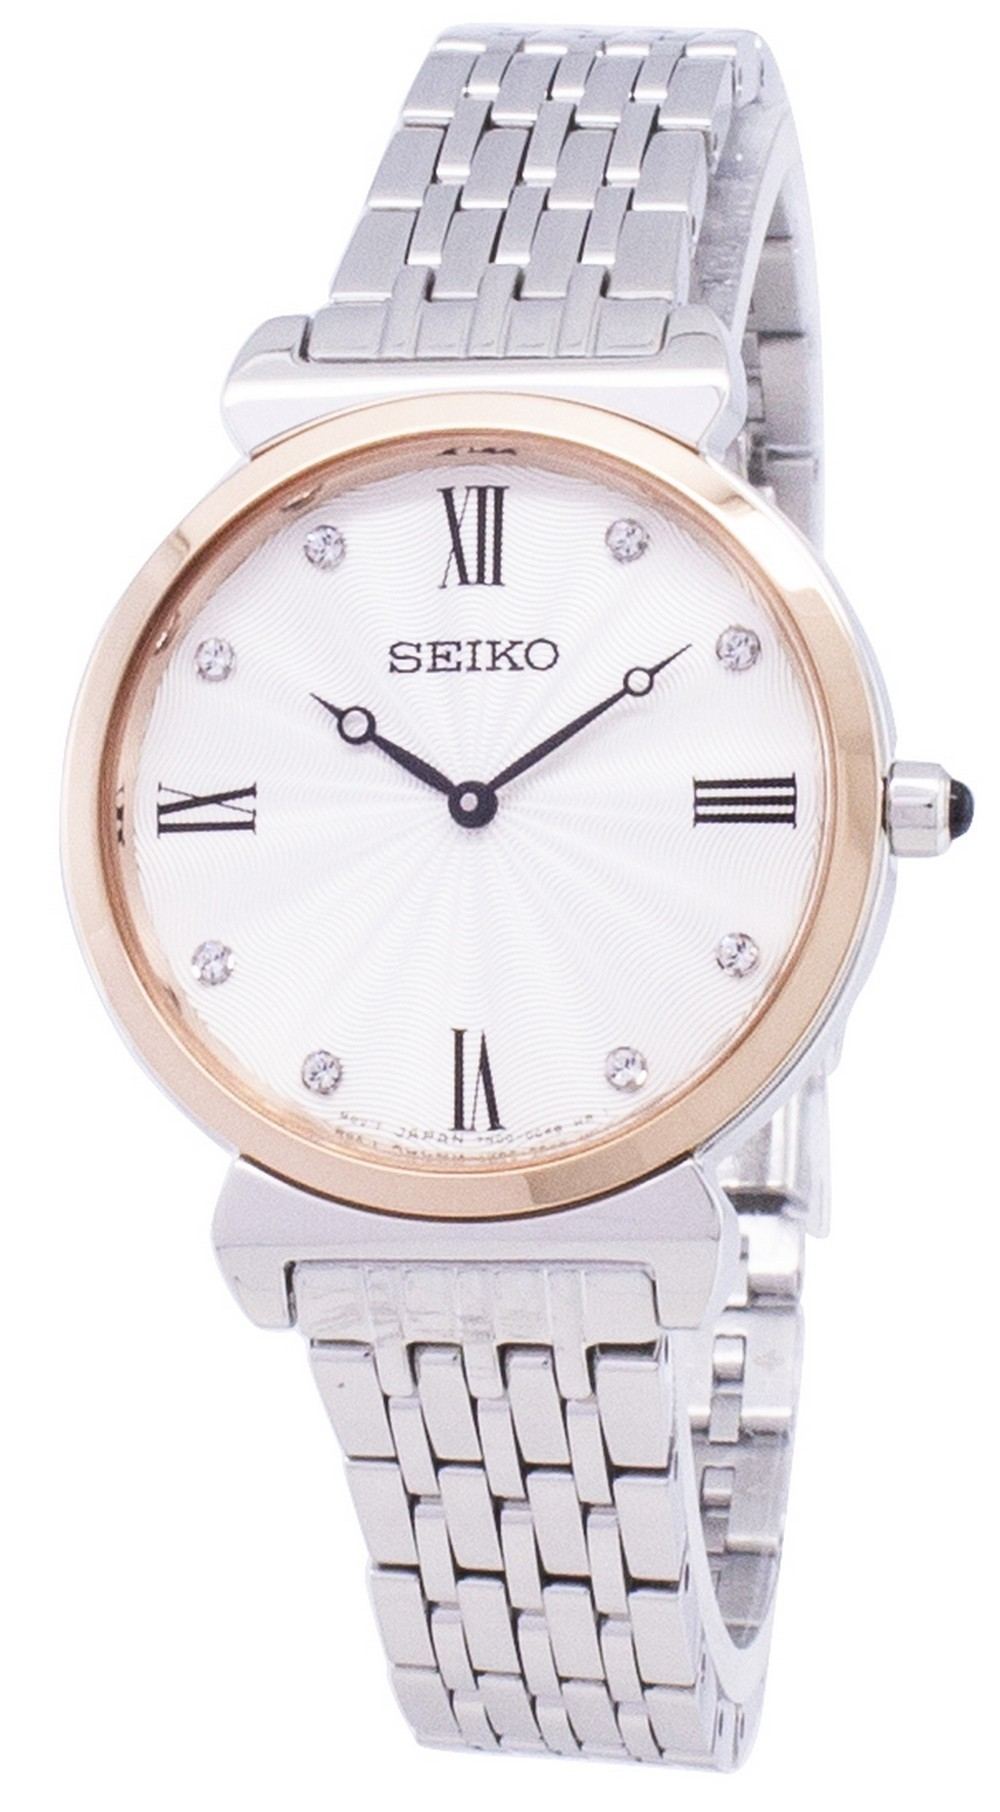 Seiko Women's Analog Diamond Accents Stainless Steel Watch - SFQ798P1